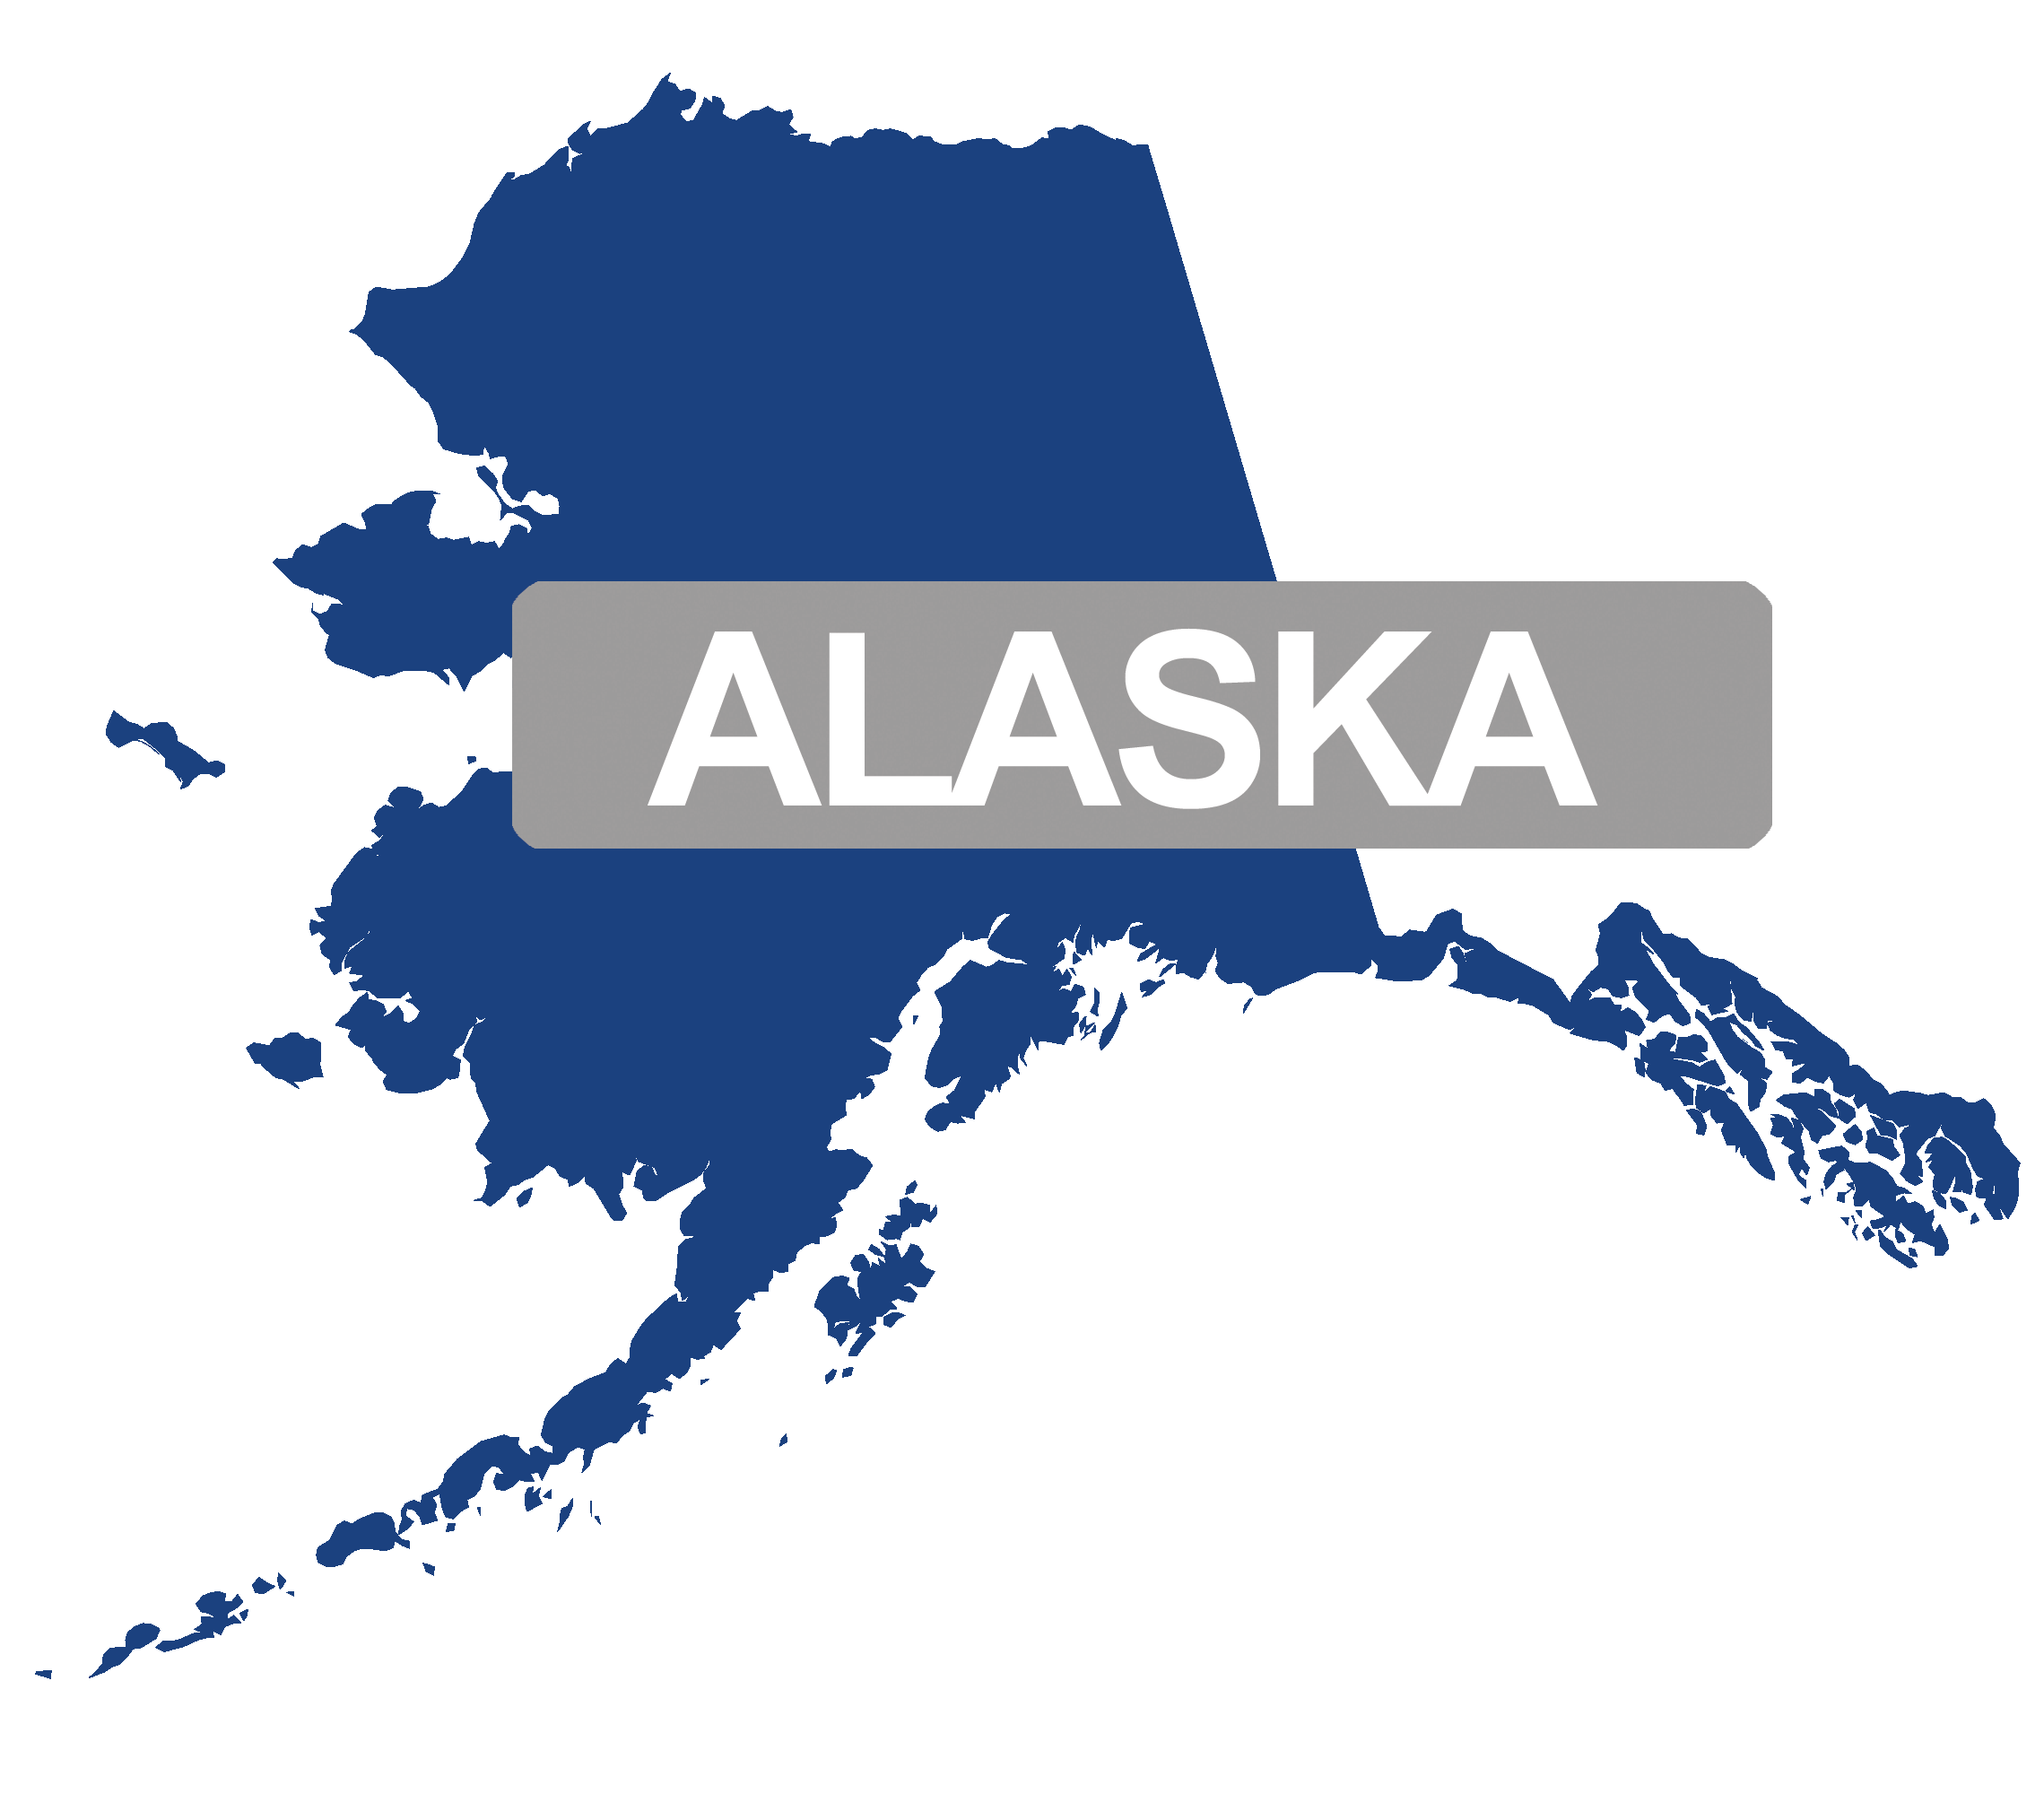 Alaska Electrical Continuing Education for Journeyman, Master Electricians, and Electrical Administrators